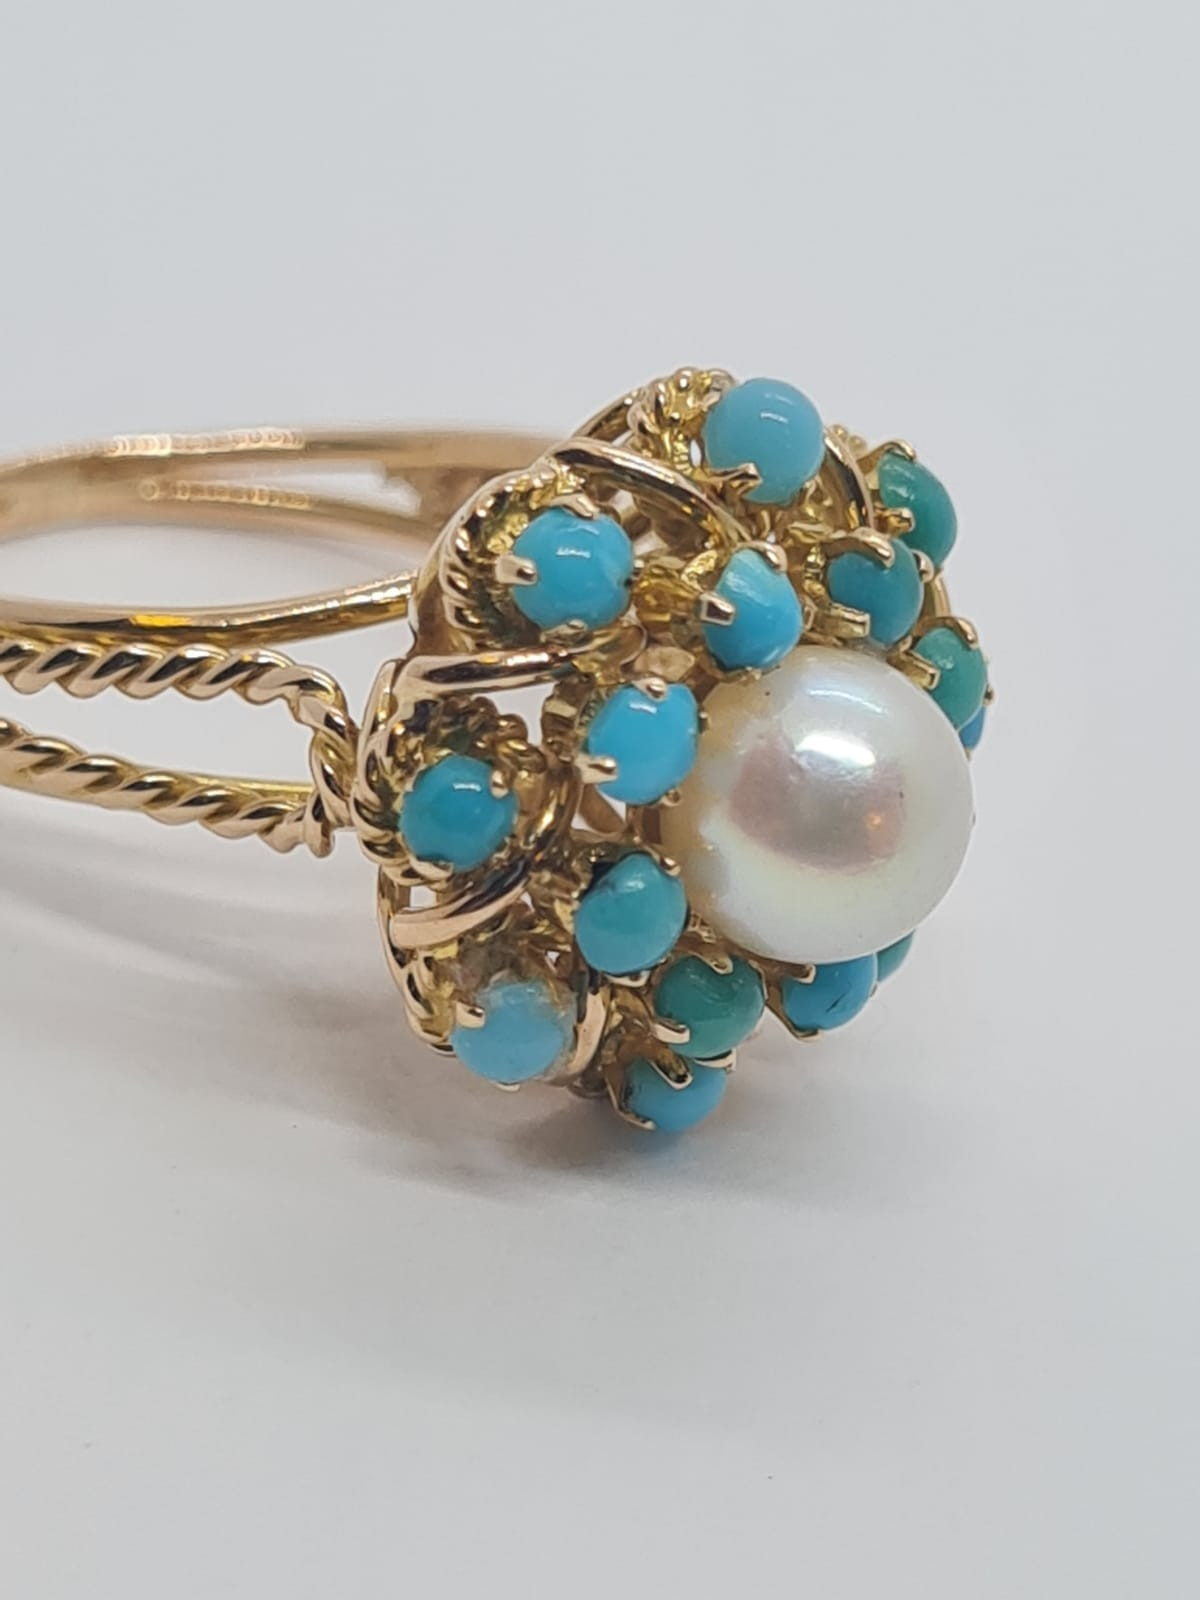 18k yellow gold TURQUISE AND PEARL CLUSTER RING, weight 5.3g and size J1/2 - Image 2 of 8